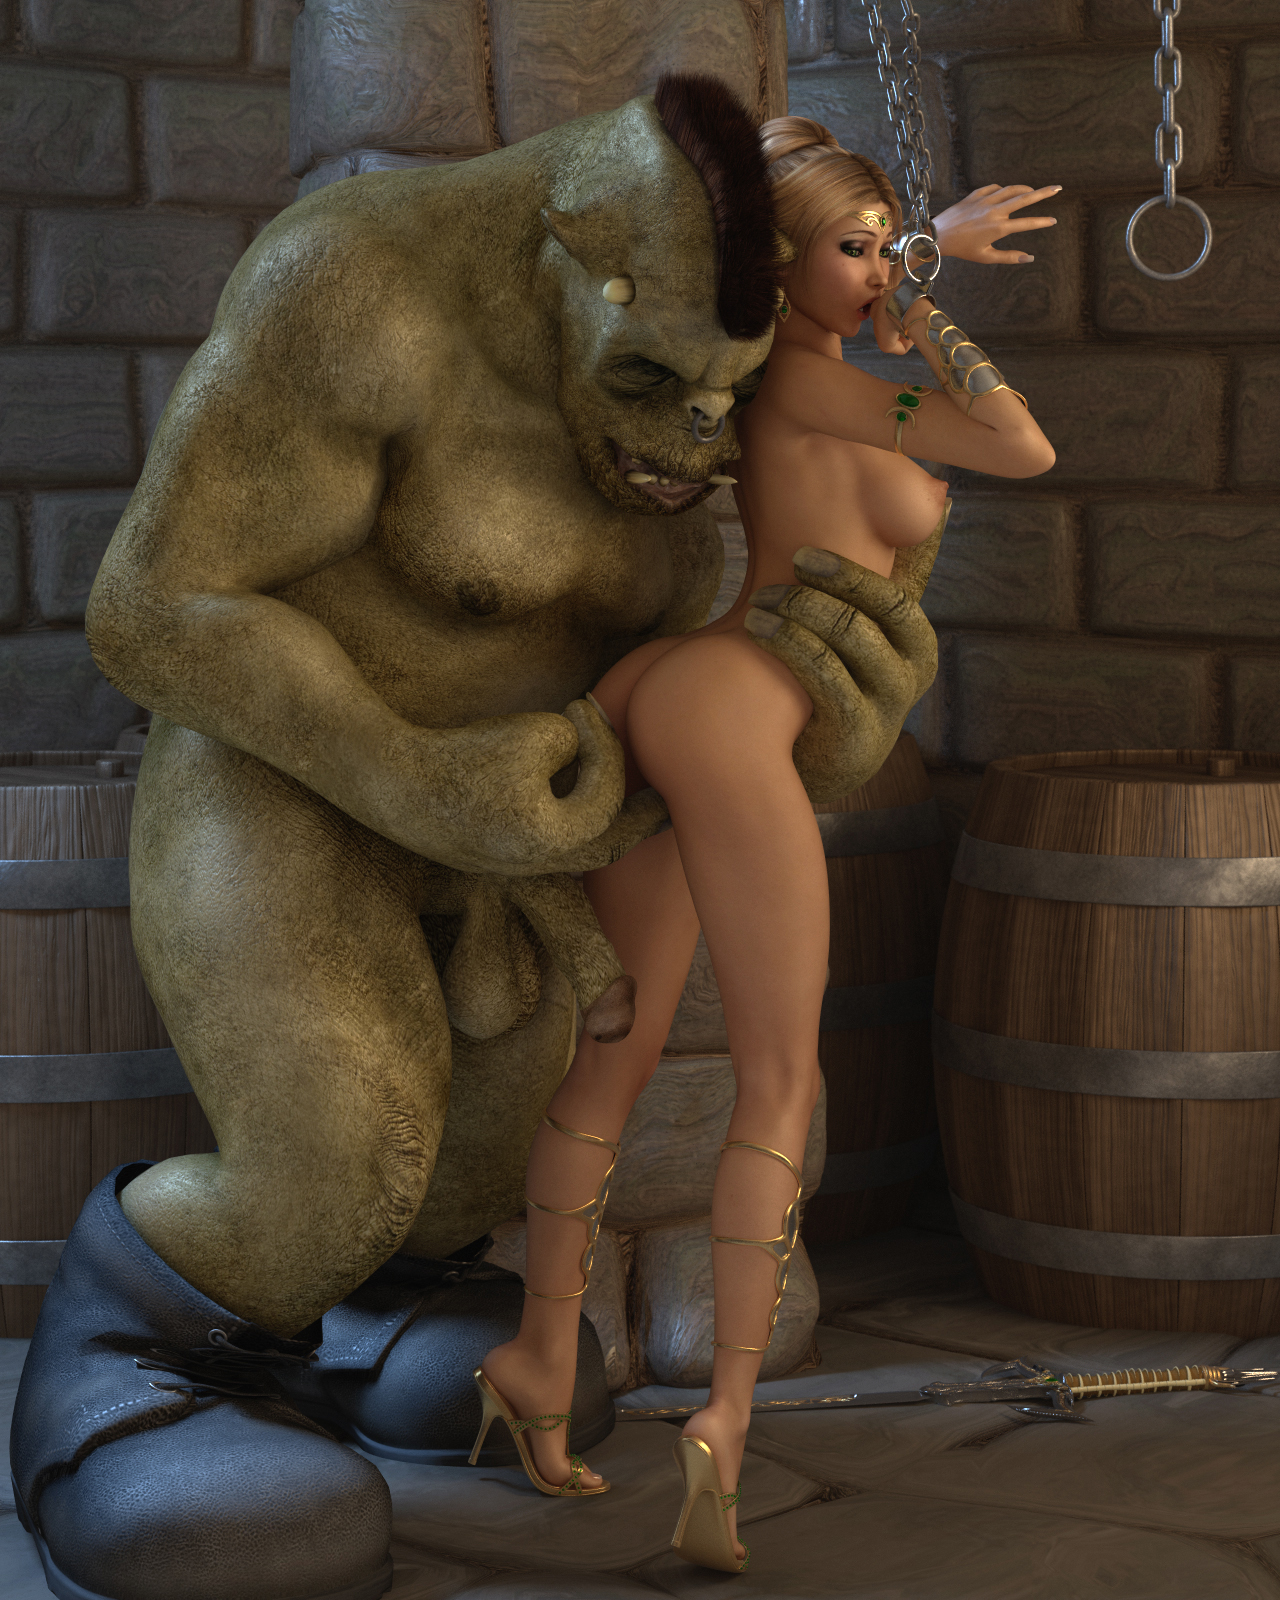 Sex cartoons 3d monster photo sex scene